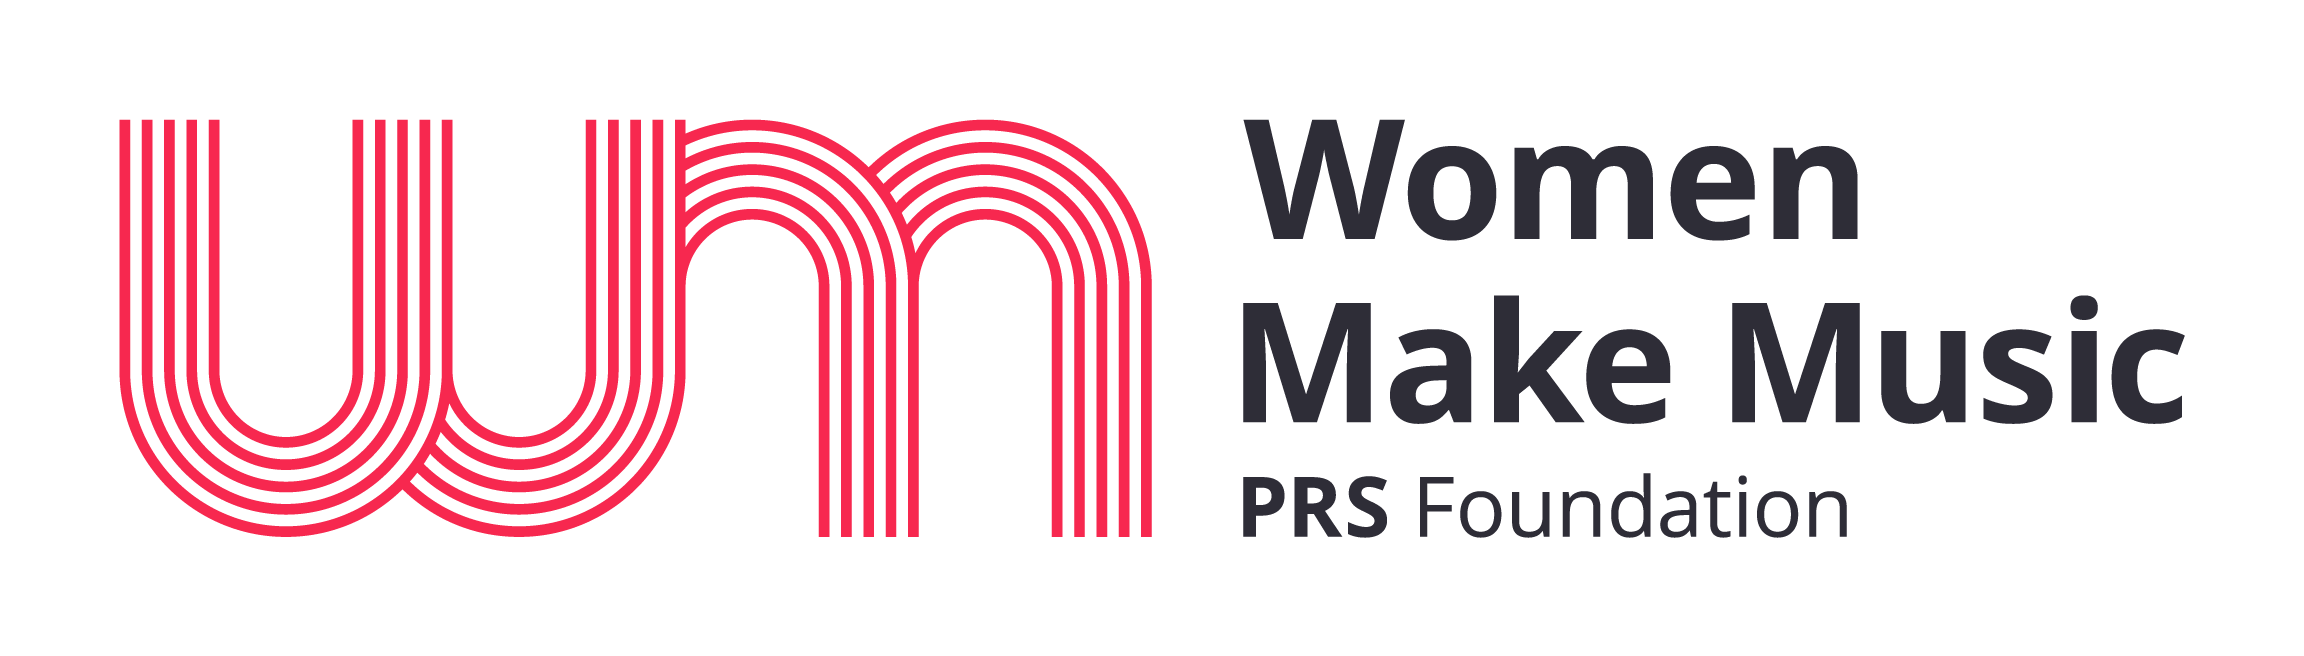 prs-womenmakemusic-logotype-red-blue-rgb-large.png